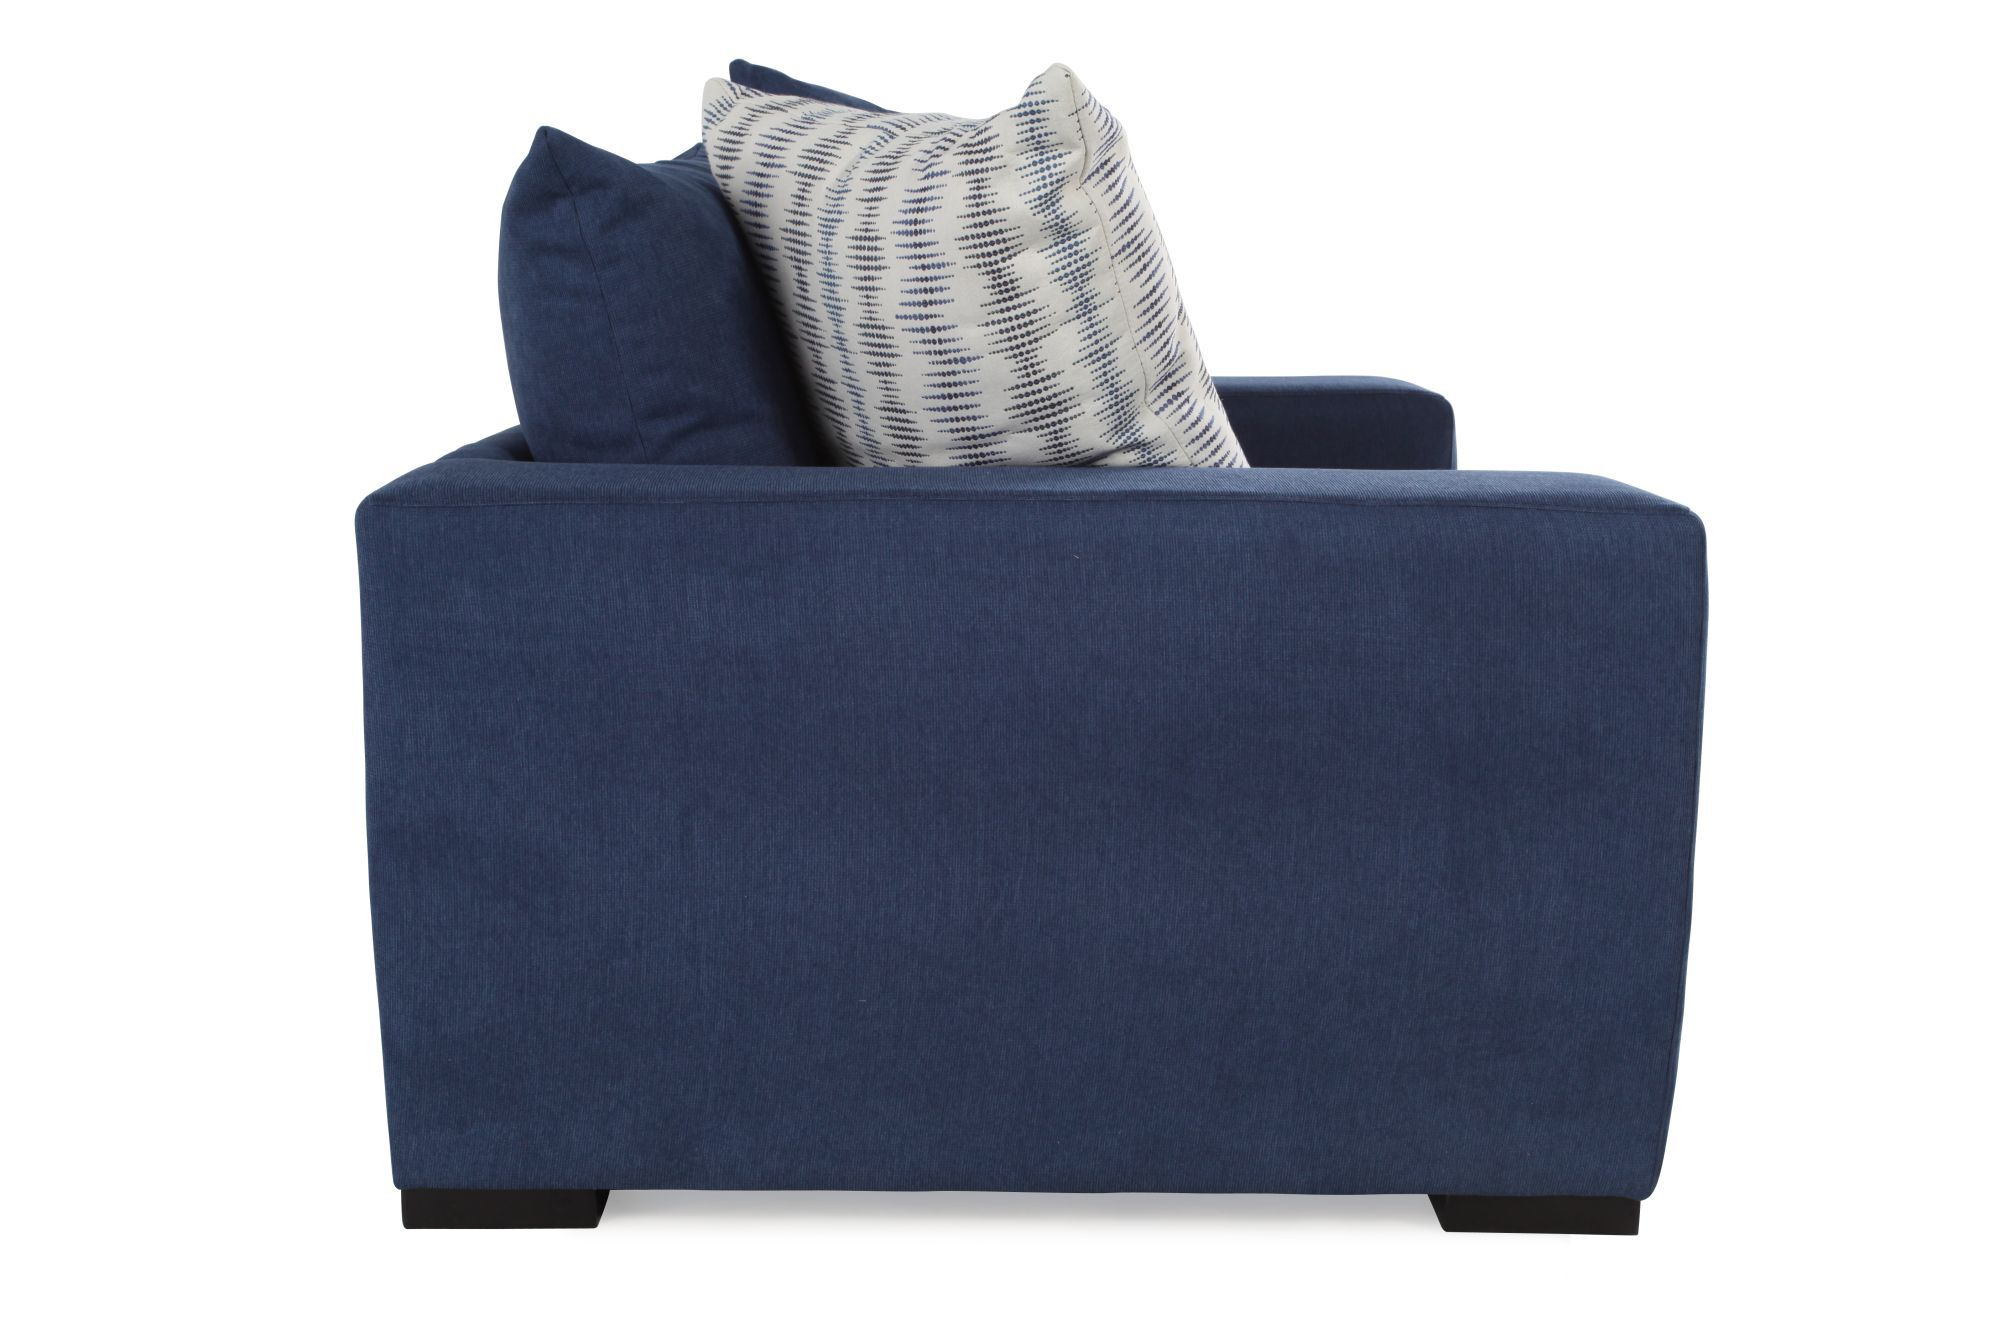 enchanting low seating living room furniture | Low-Profile Casual Arm Chair in Blue | Mathis Brothers ...